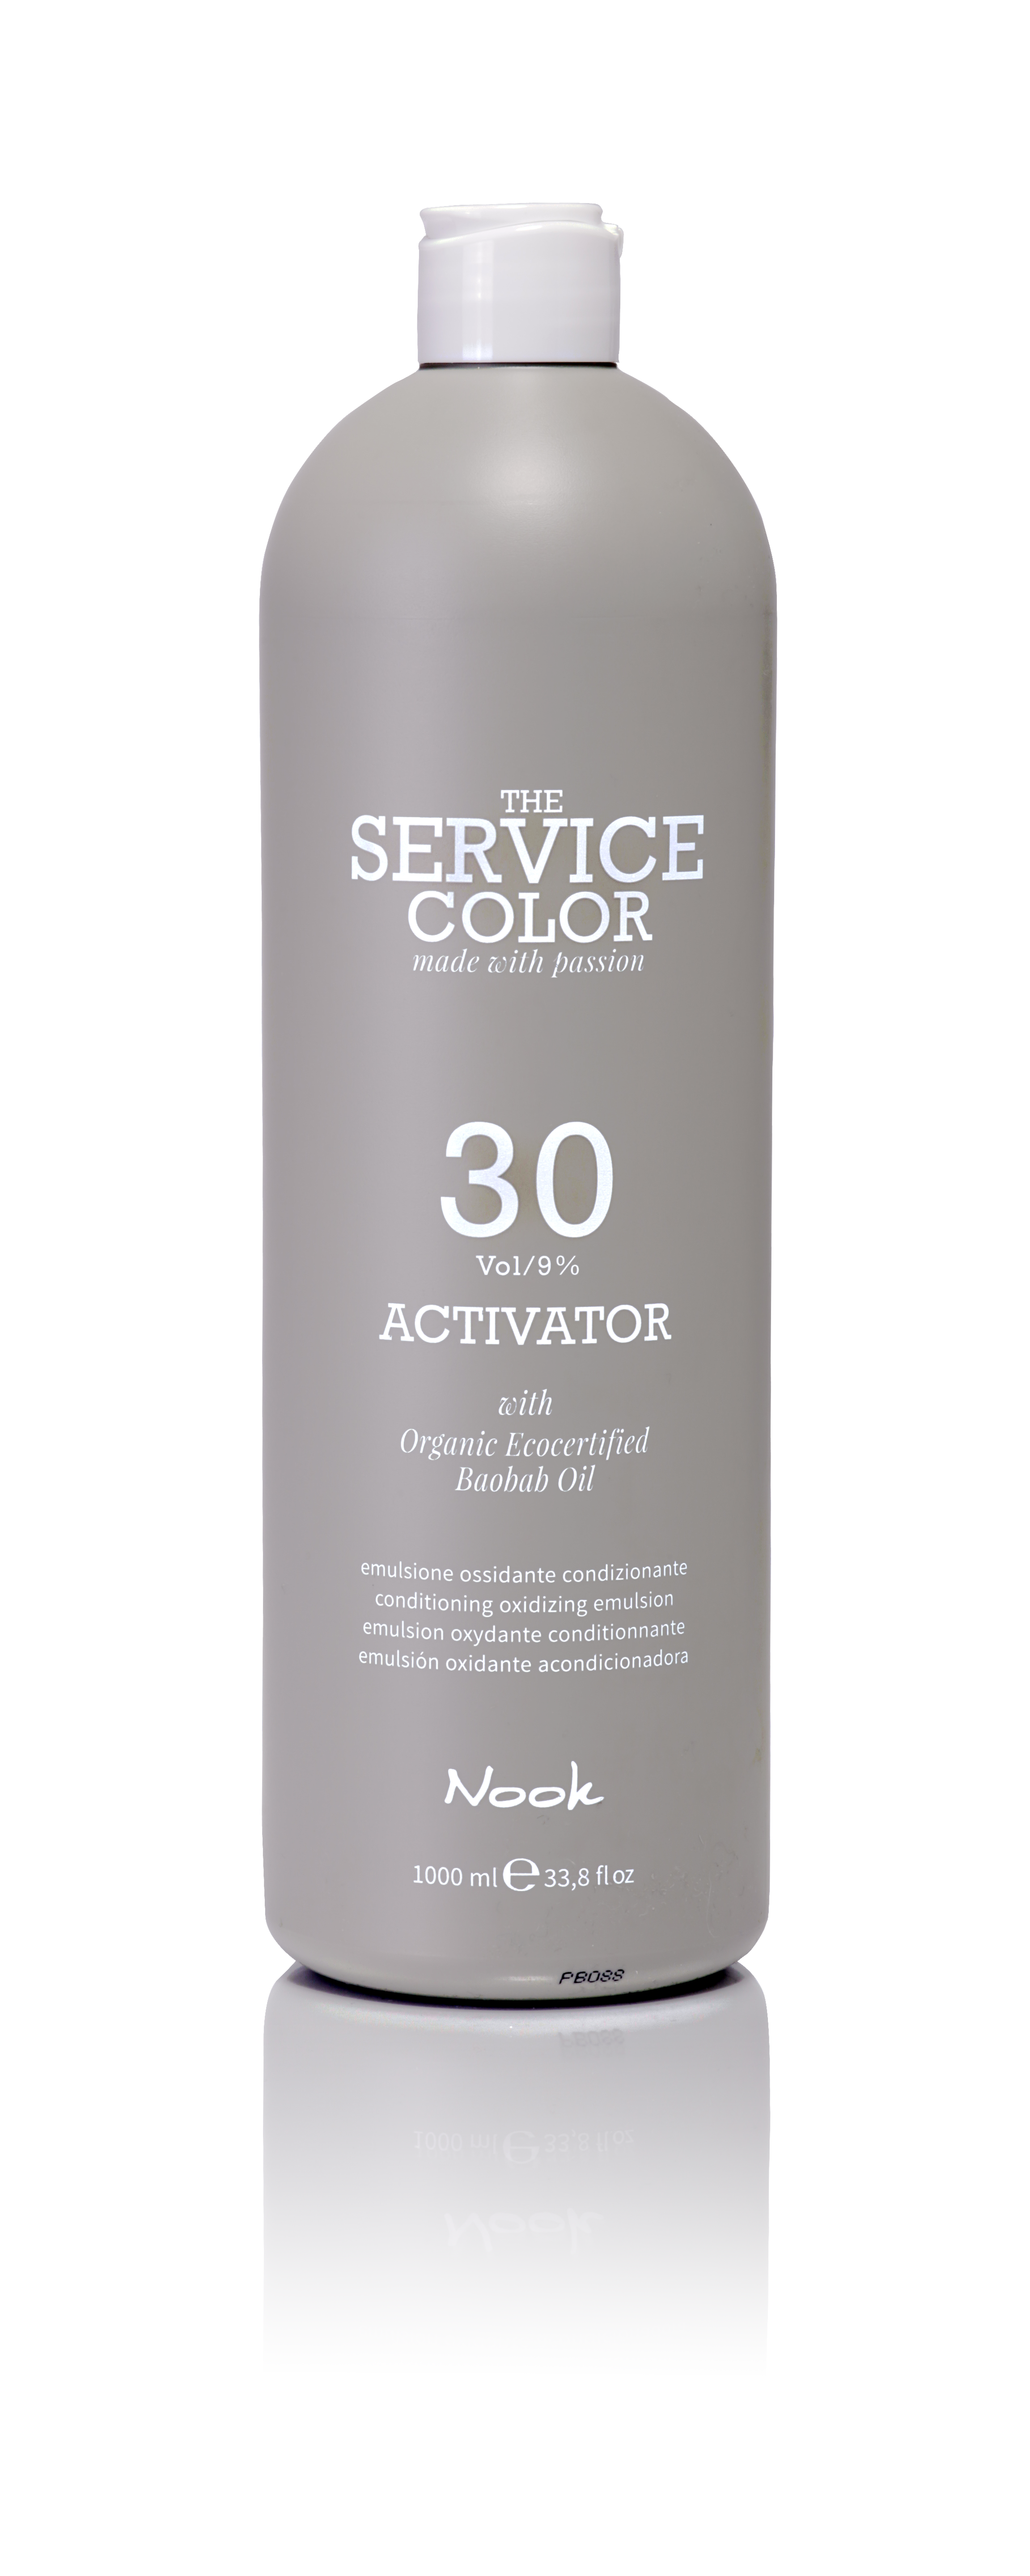 NOOK Активатор 9% (30vol) / ACTIVATOR THE SERVICE COLOR 1000мл the complete voodoo vol 3